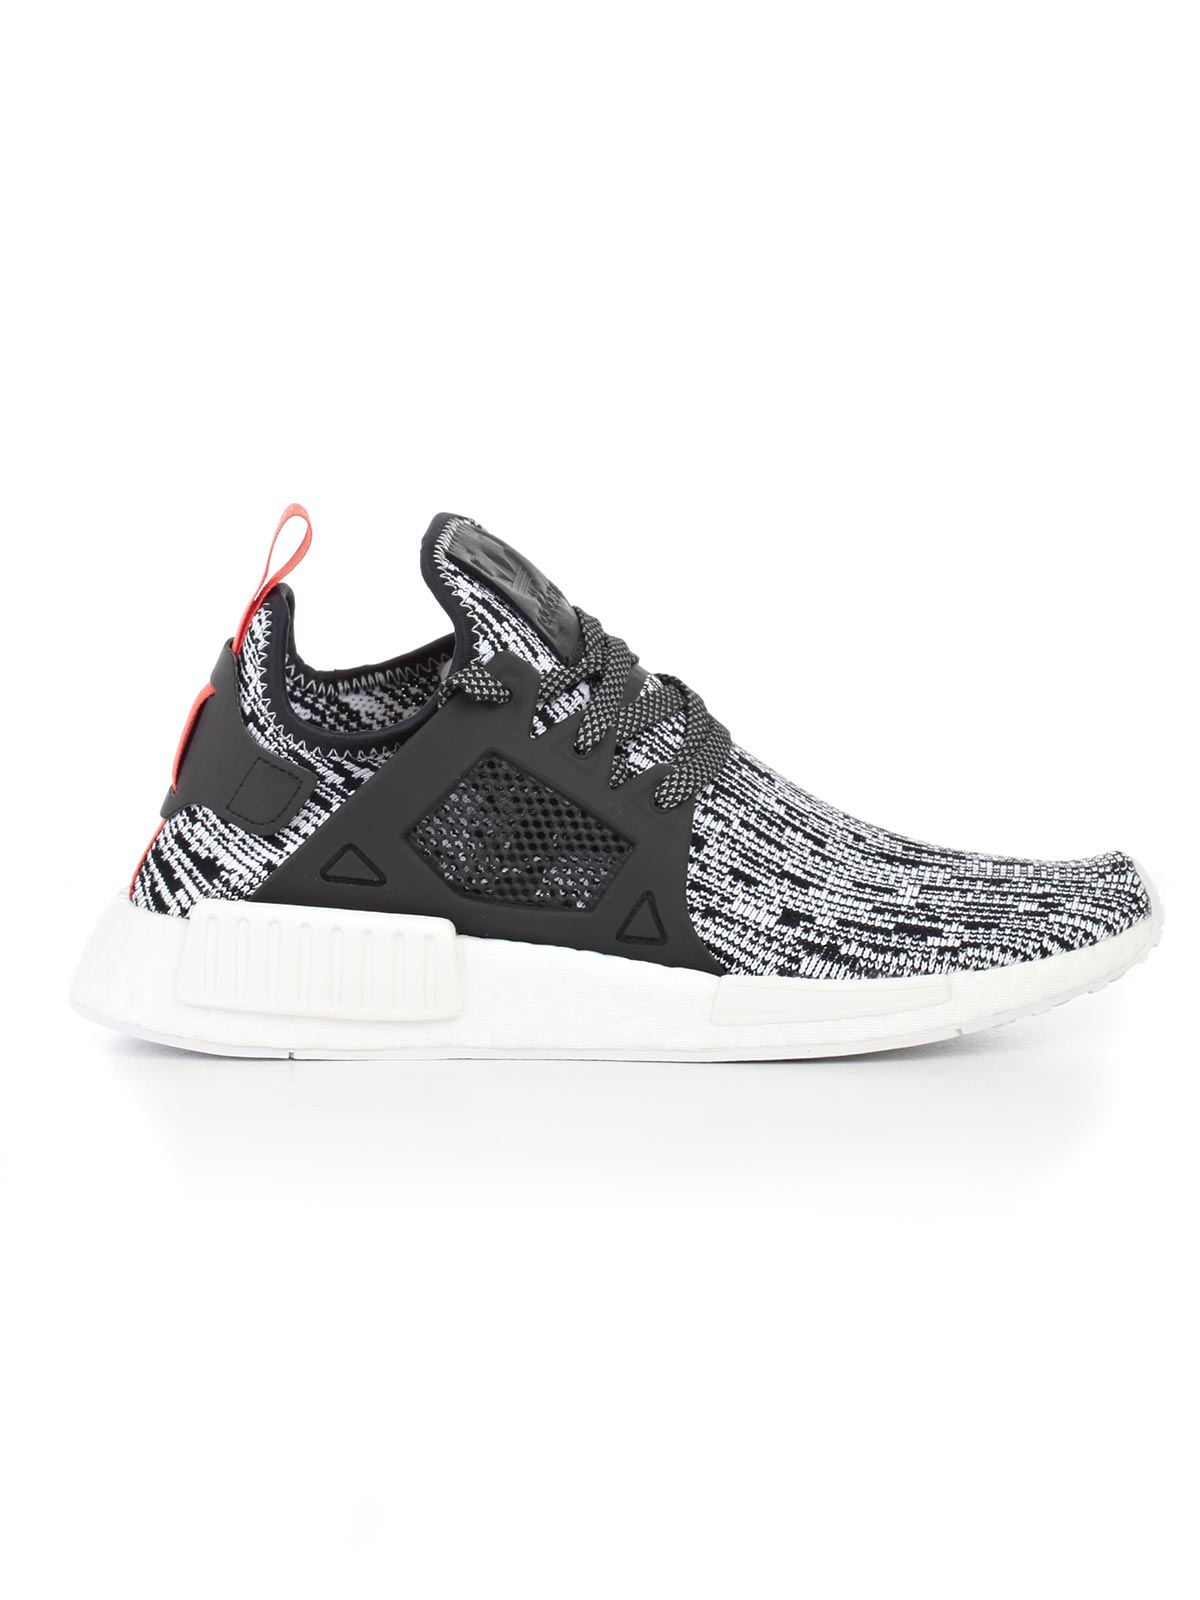 Picture of ADIDAS ORIGINALS FOOTWEAR SCARPA NMD XR1